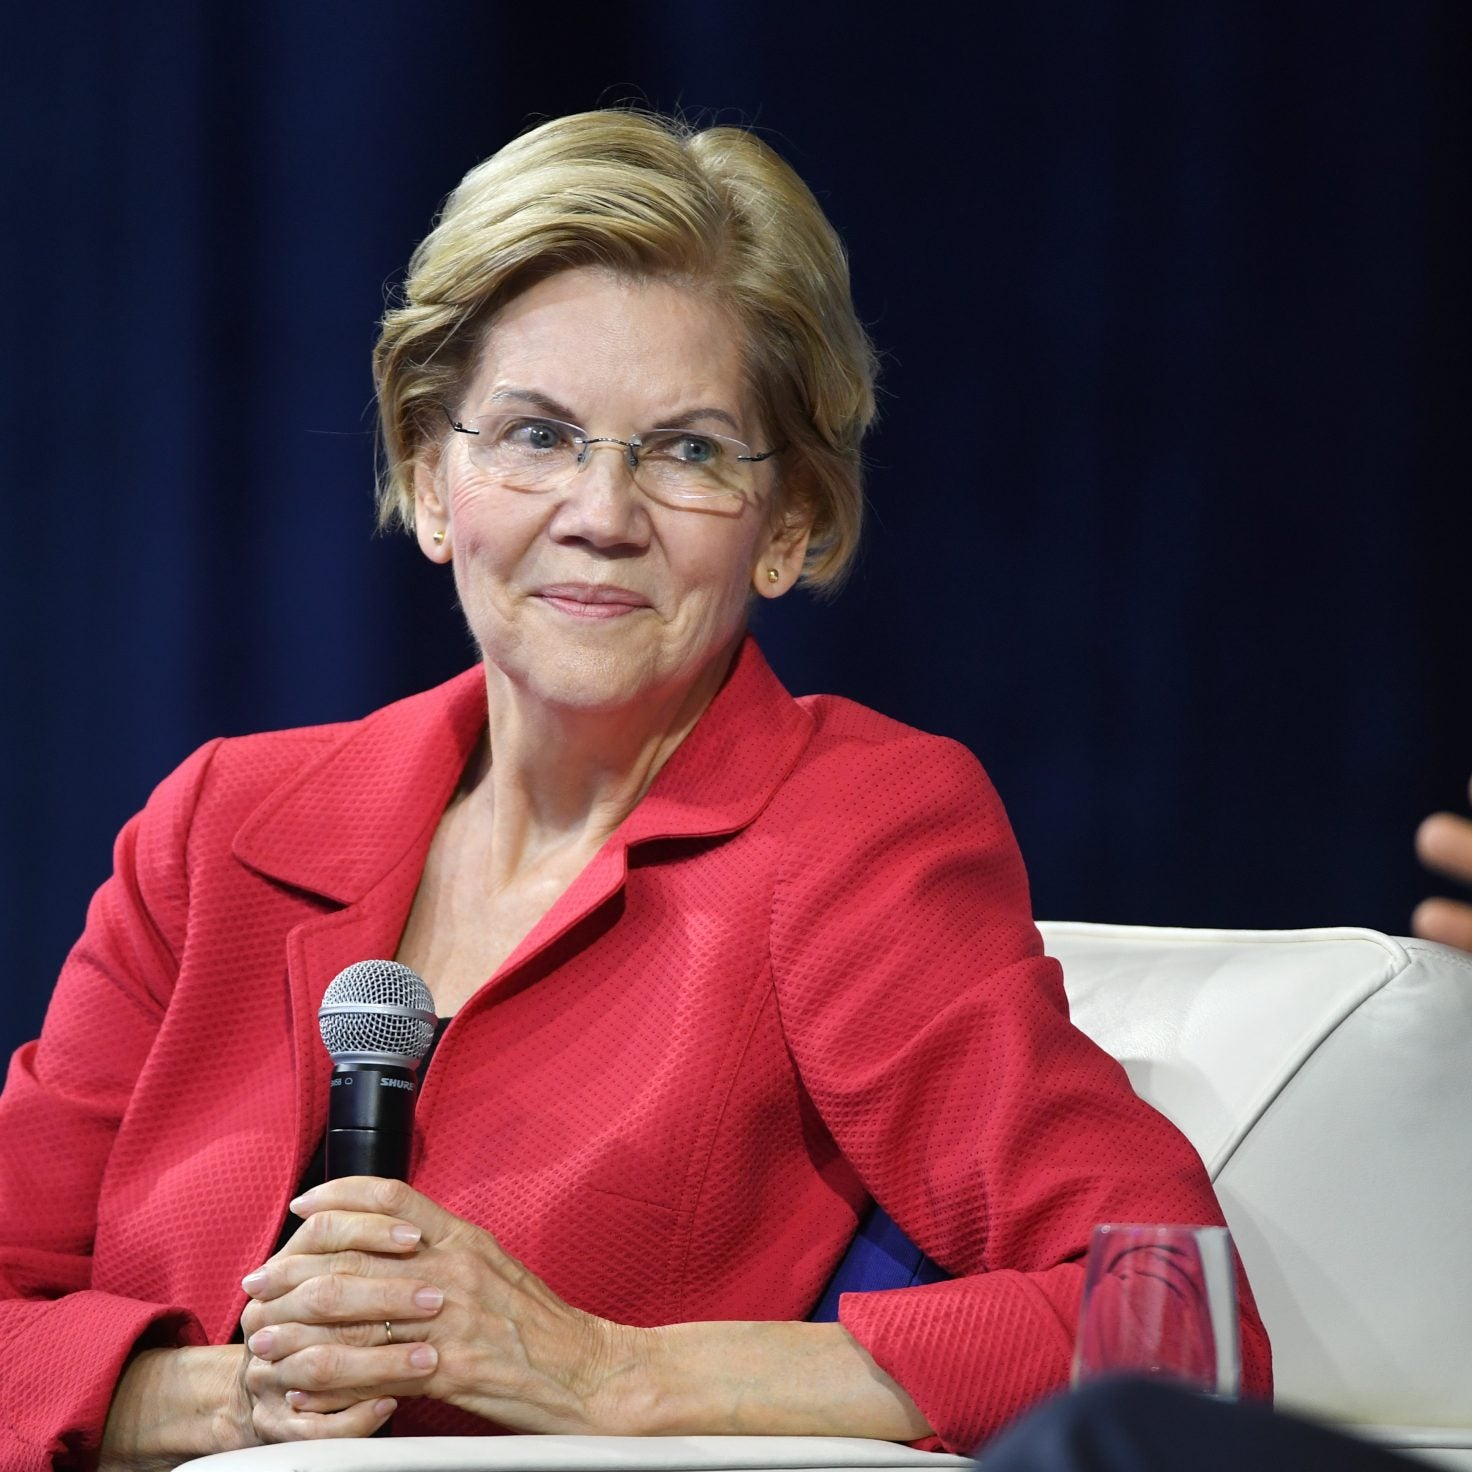 Collective Of Black Women Activists Rally Behind Elizabeth Warren